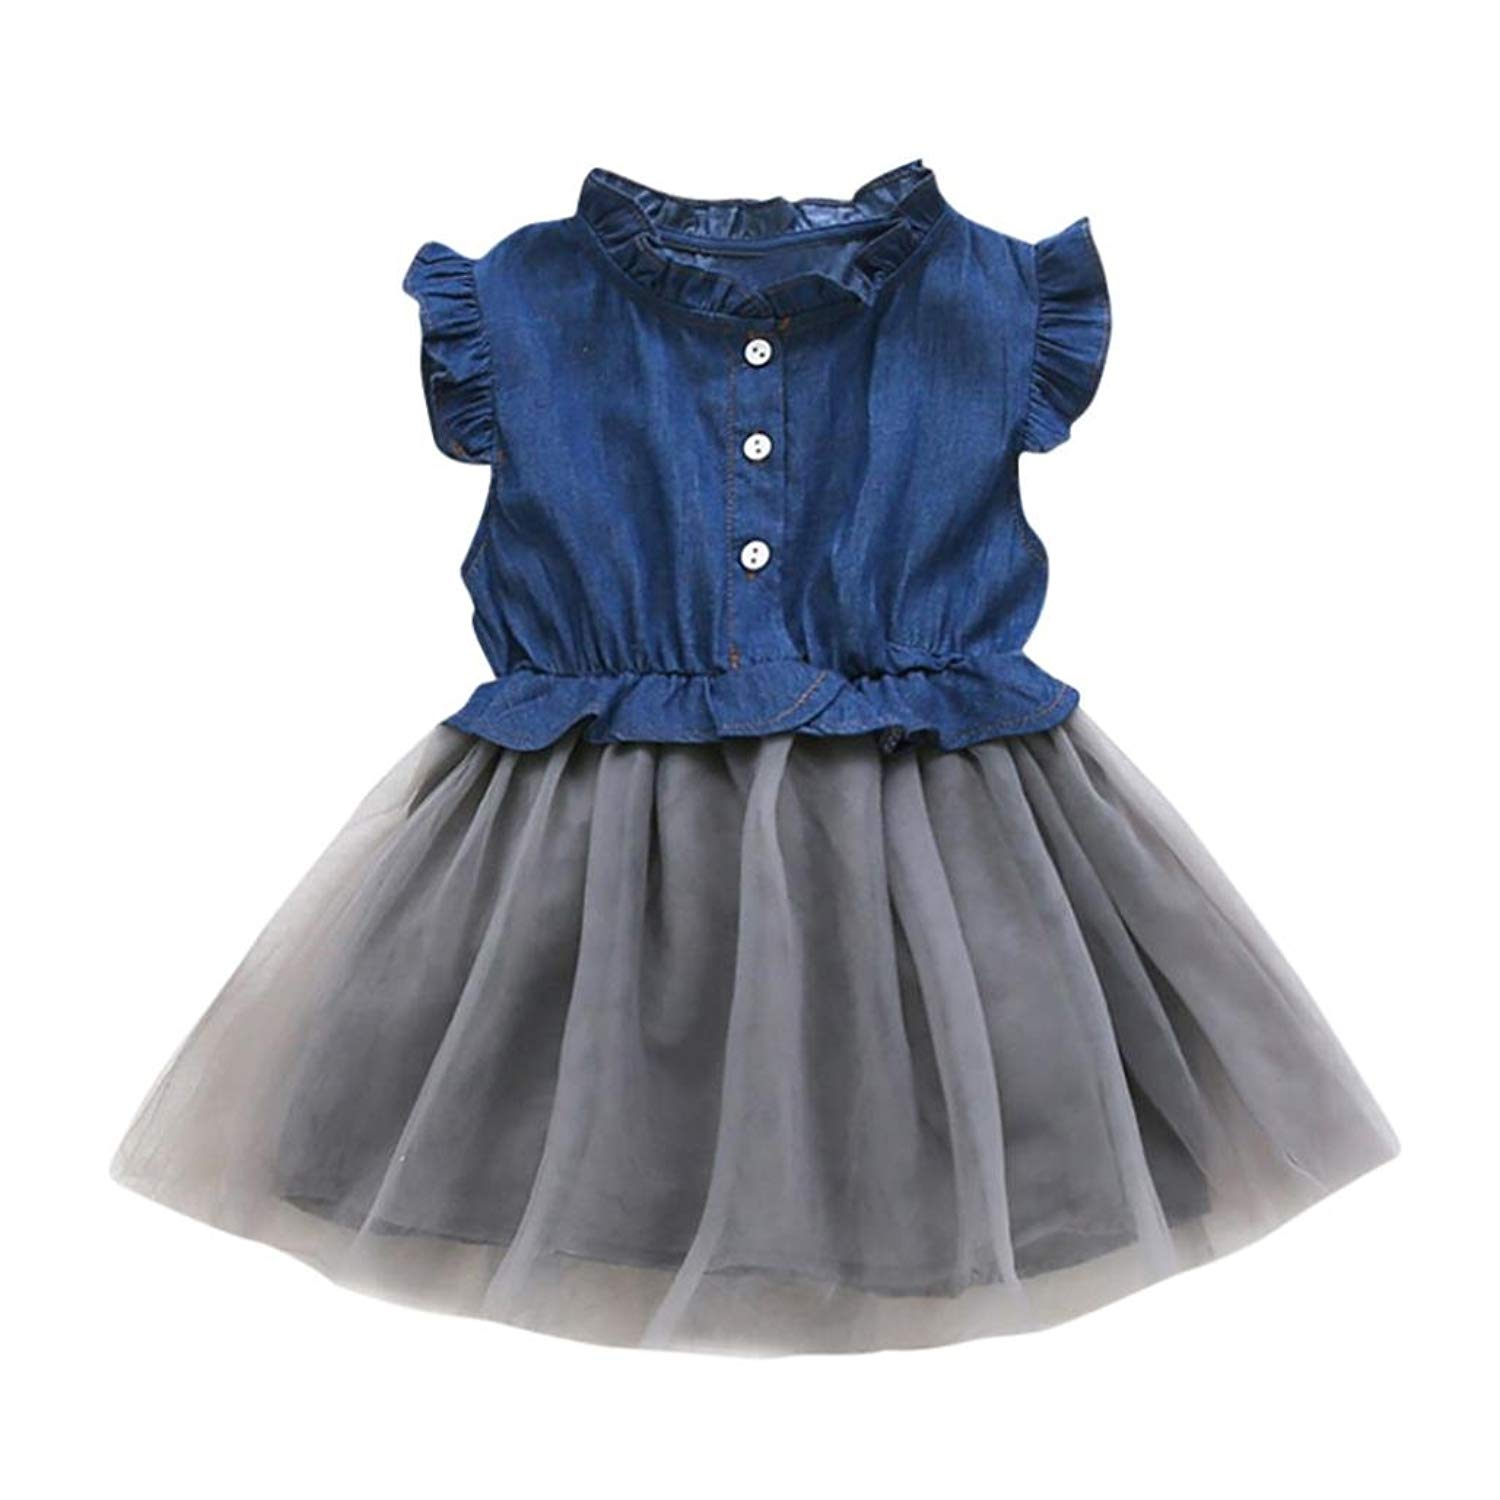 67bc1b518 Get Quotations · Baby Clothes Sets, Toddler Girls Denim Dress Sleeveless  Tutu Dress Cowboy Clothes by WOCACHI